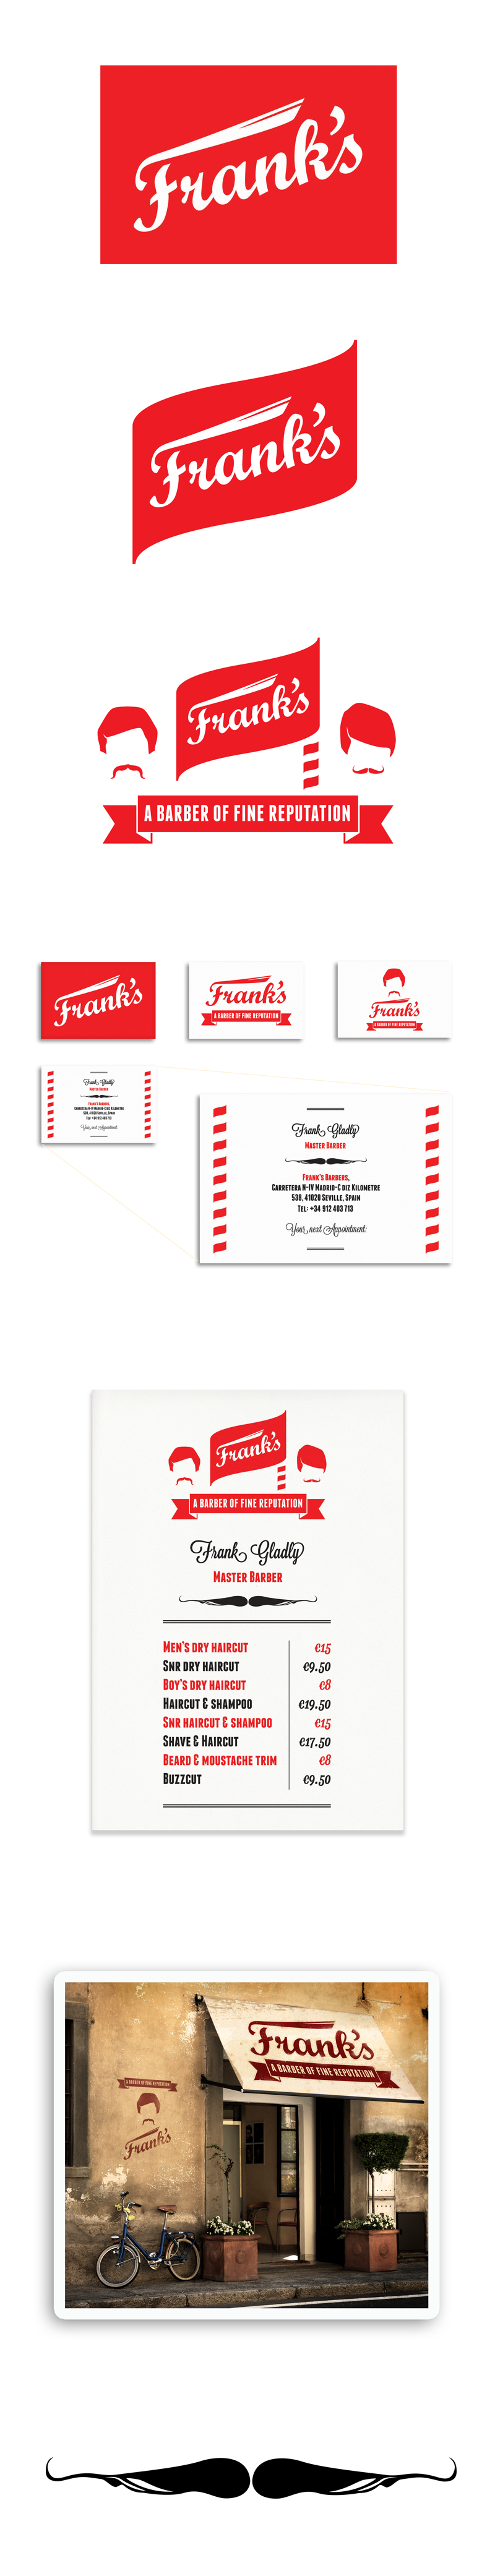 Franks barbers of seville logos print materials designed in franks barber logo shop seville by theory unit graphic design reheart Images